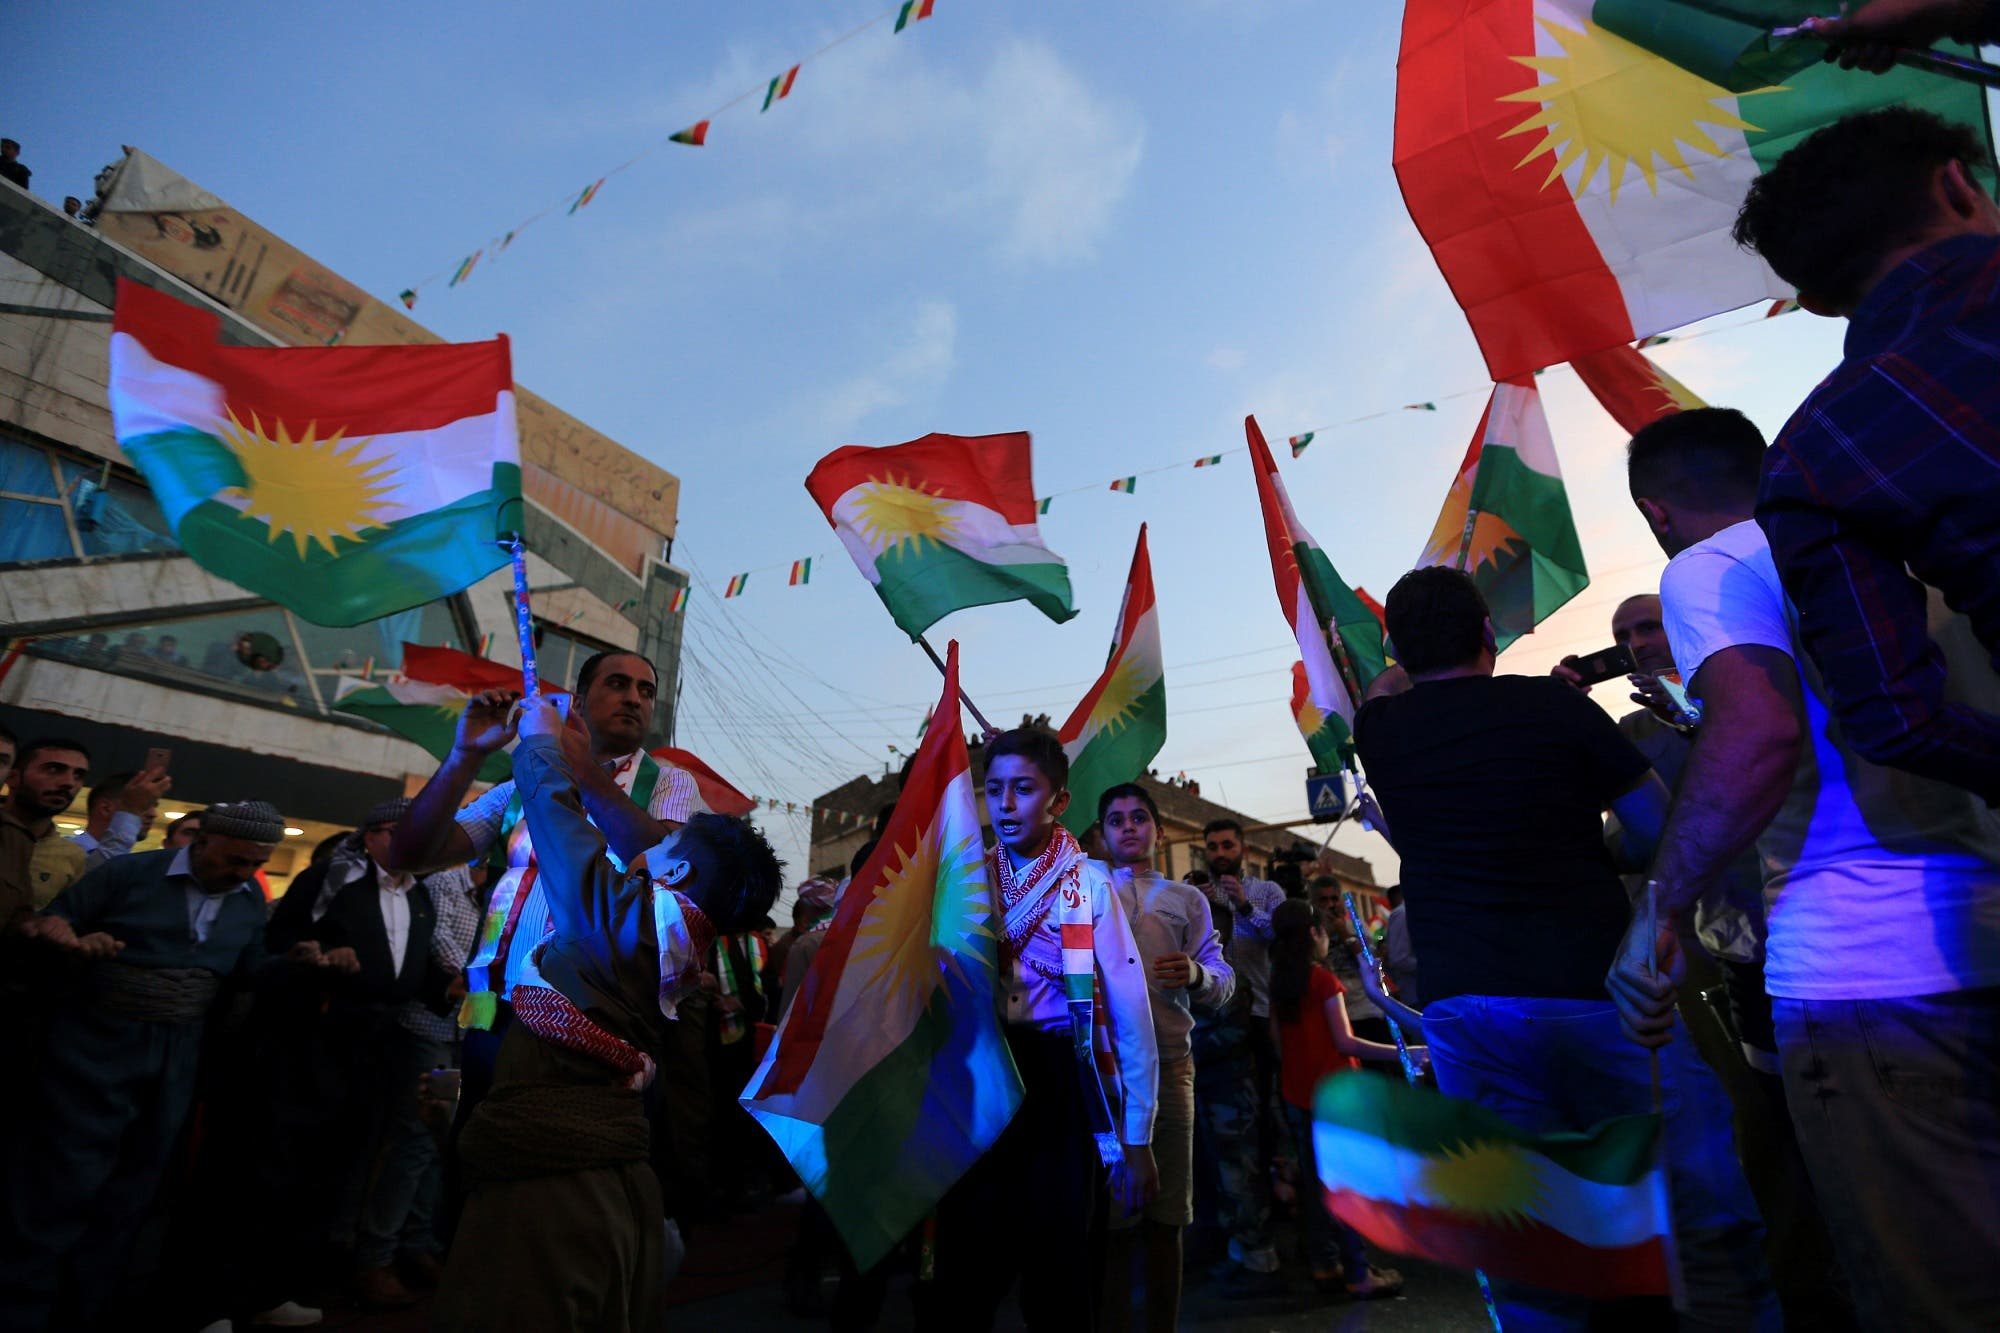 Kurds celebrate to show their support for the independence referendum in Duhok, Iraq, September 26, 2017. (Reuters)